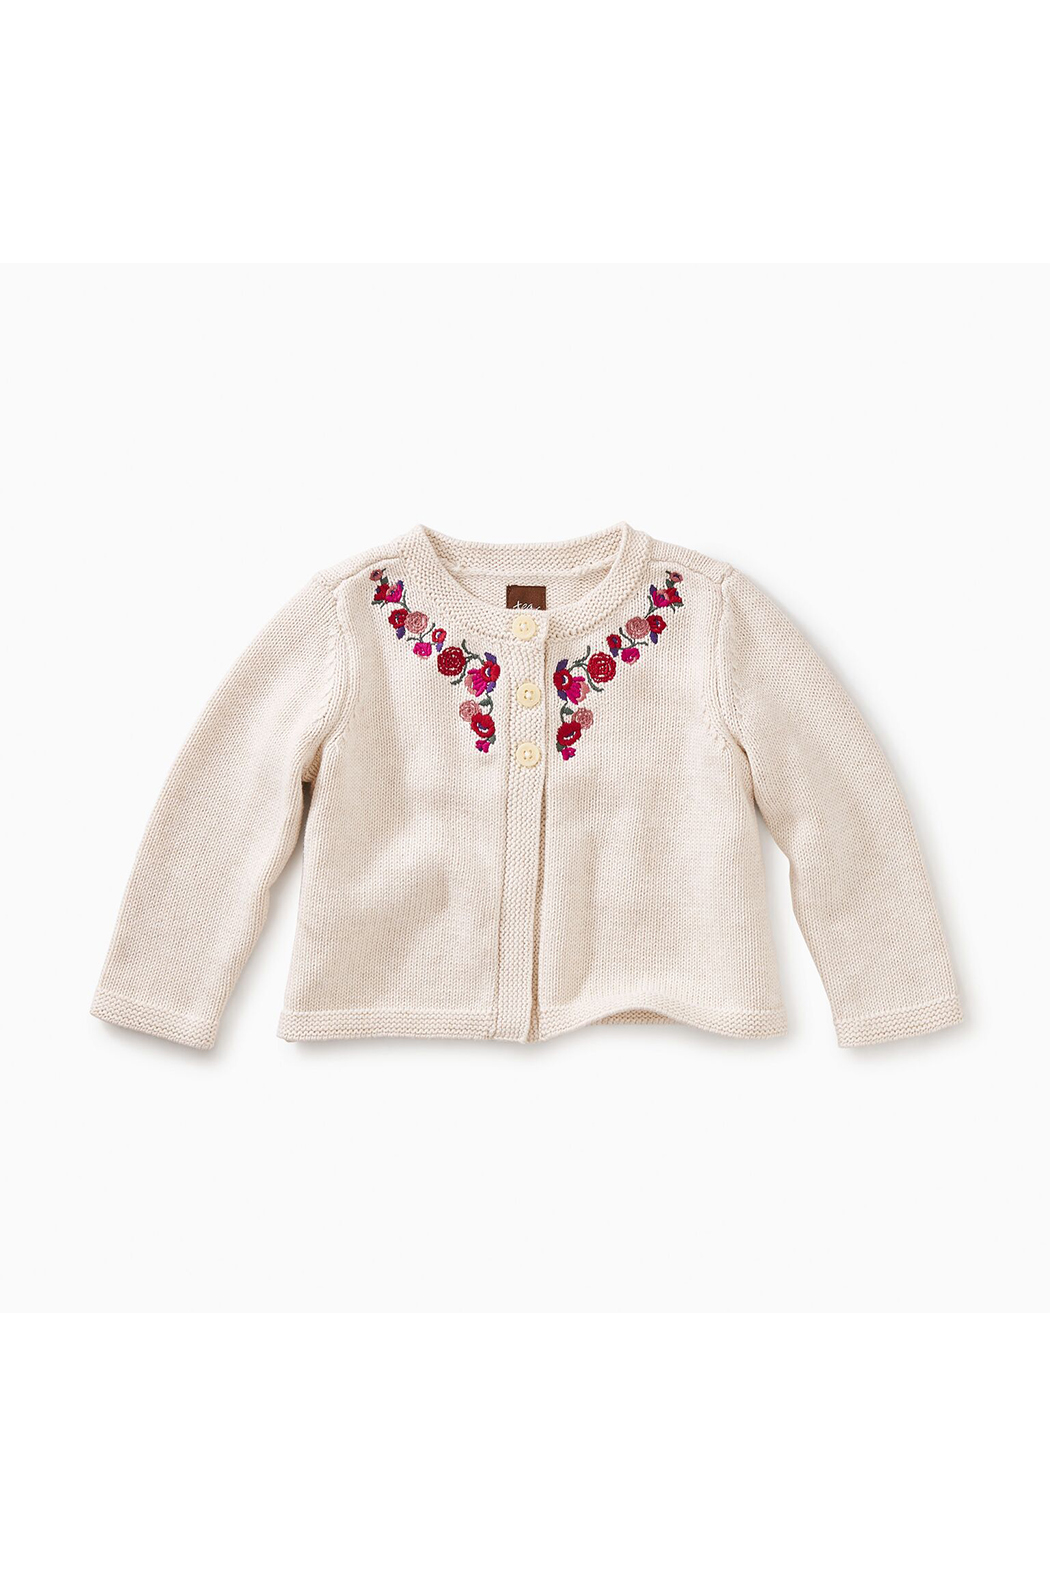 Tea Collection Embroidered Baby Cardi - Main Image